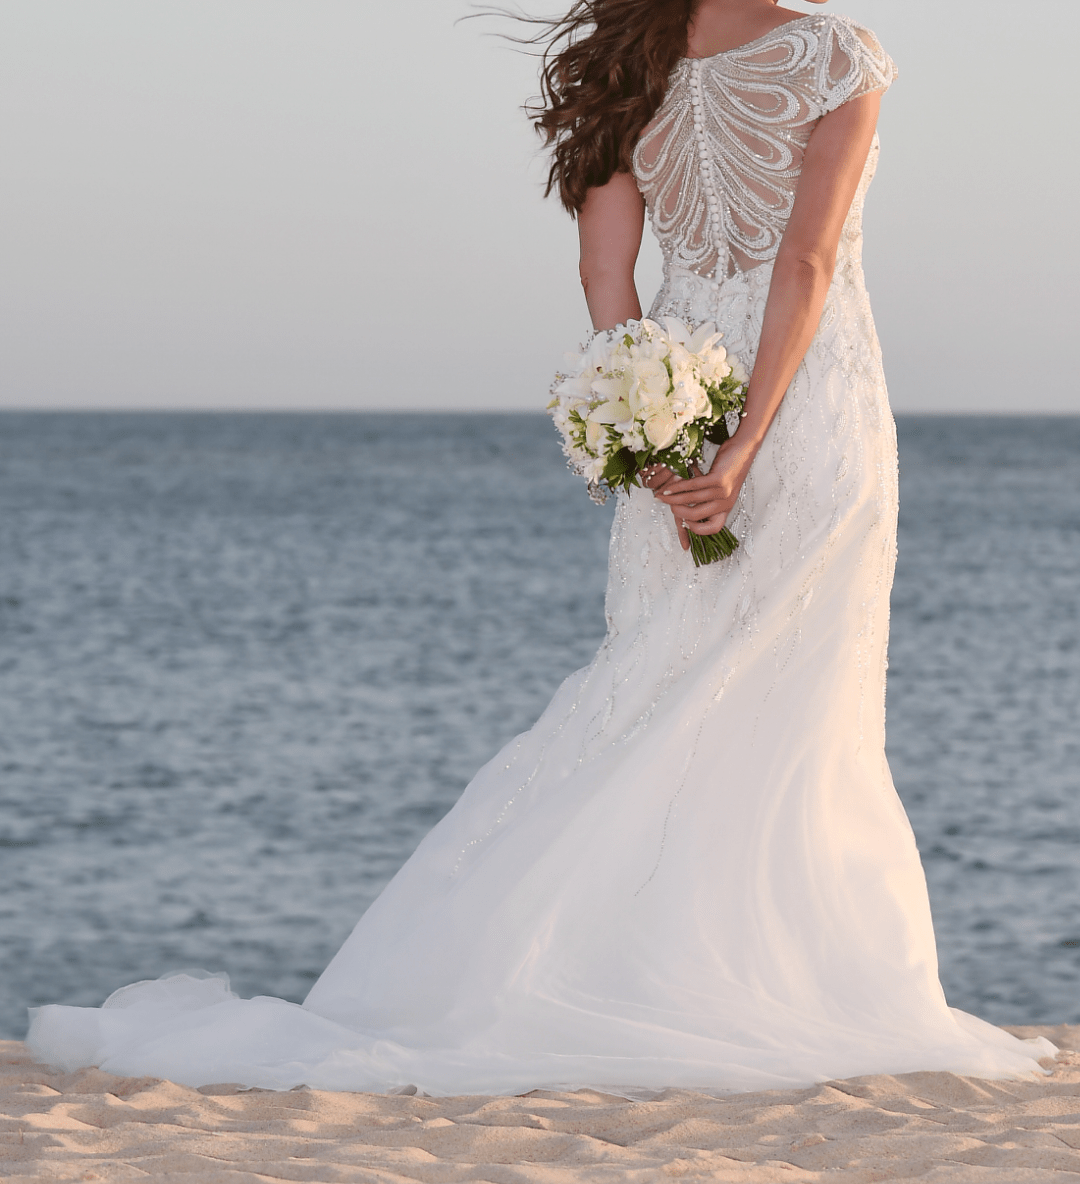 20171231 173309 sell my wedding dress online sell my for Selling your wedding dress